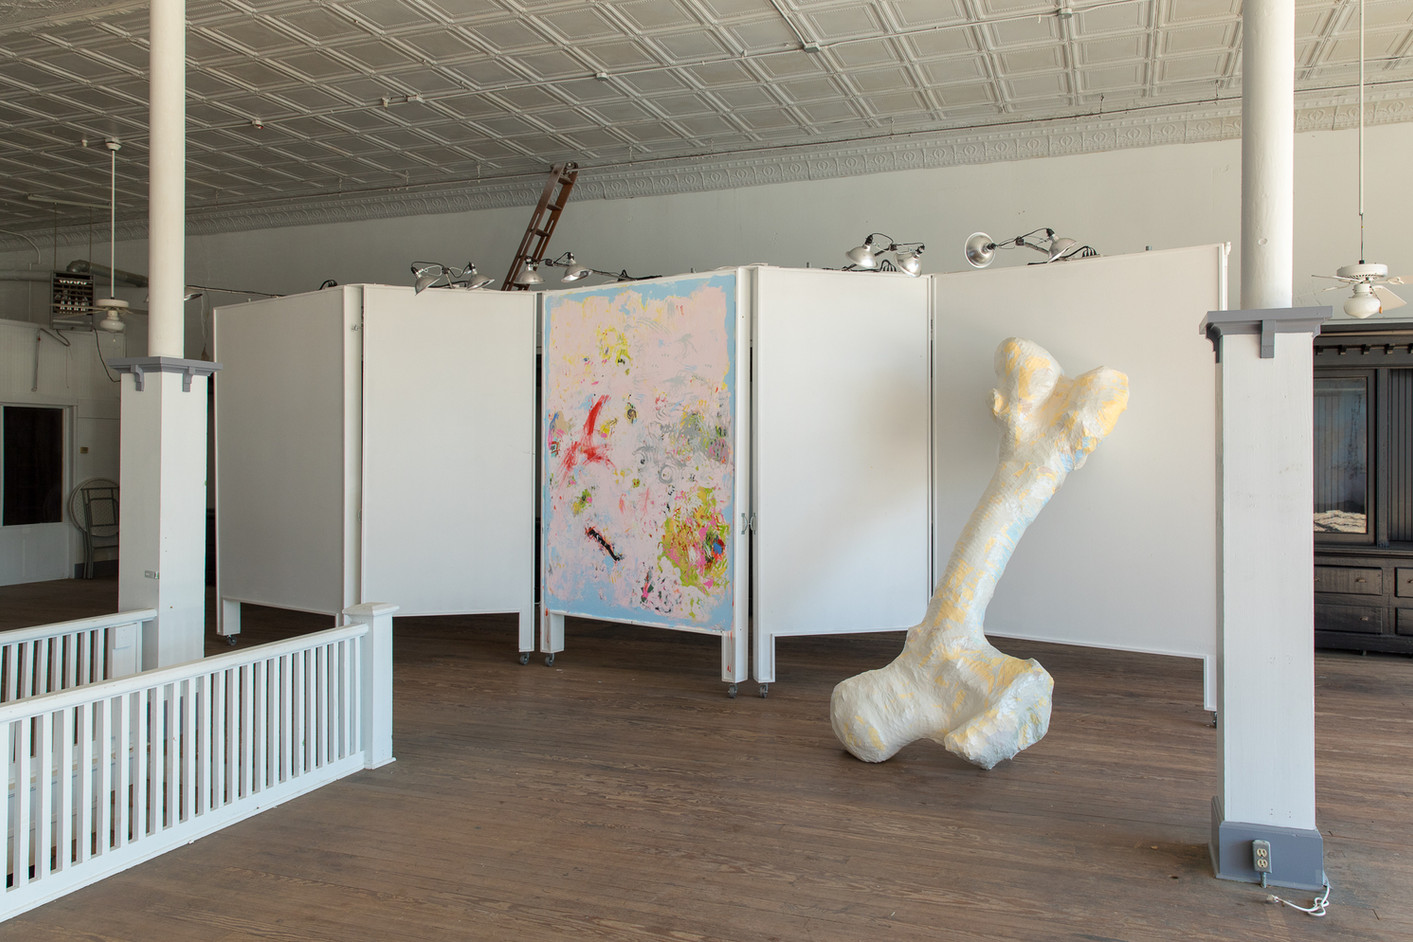 For Joan (left), For Claes (right), 2018